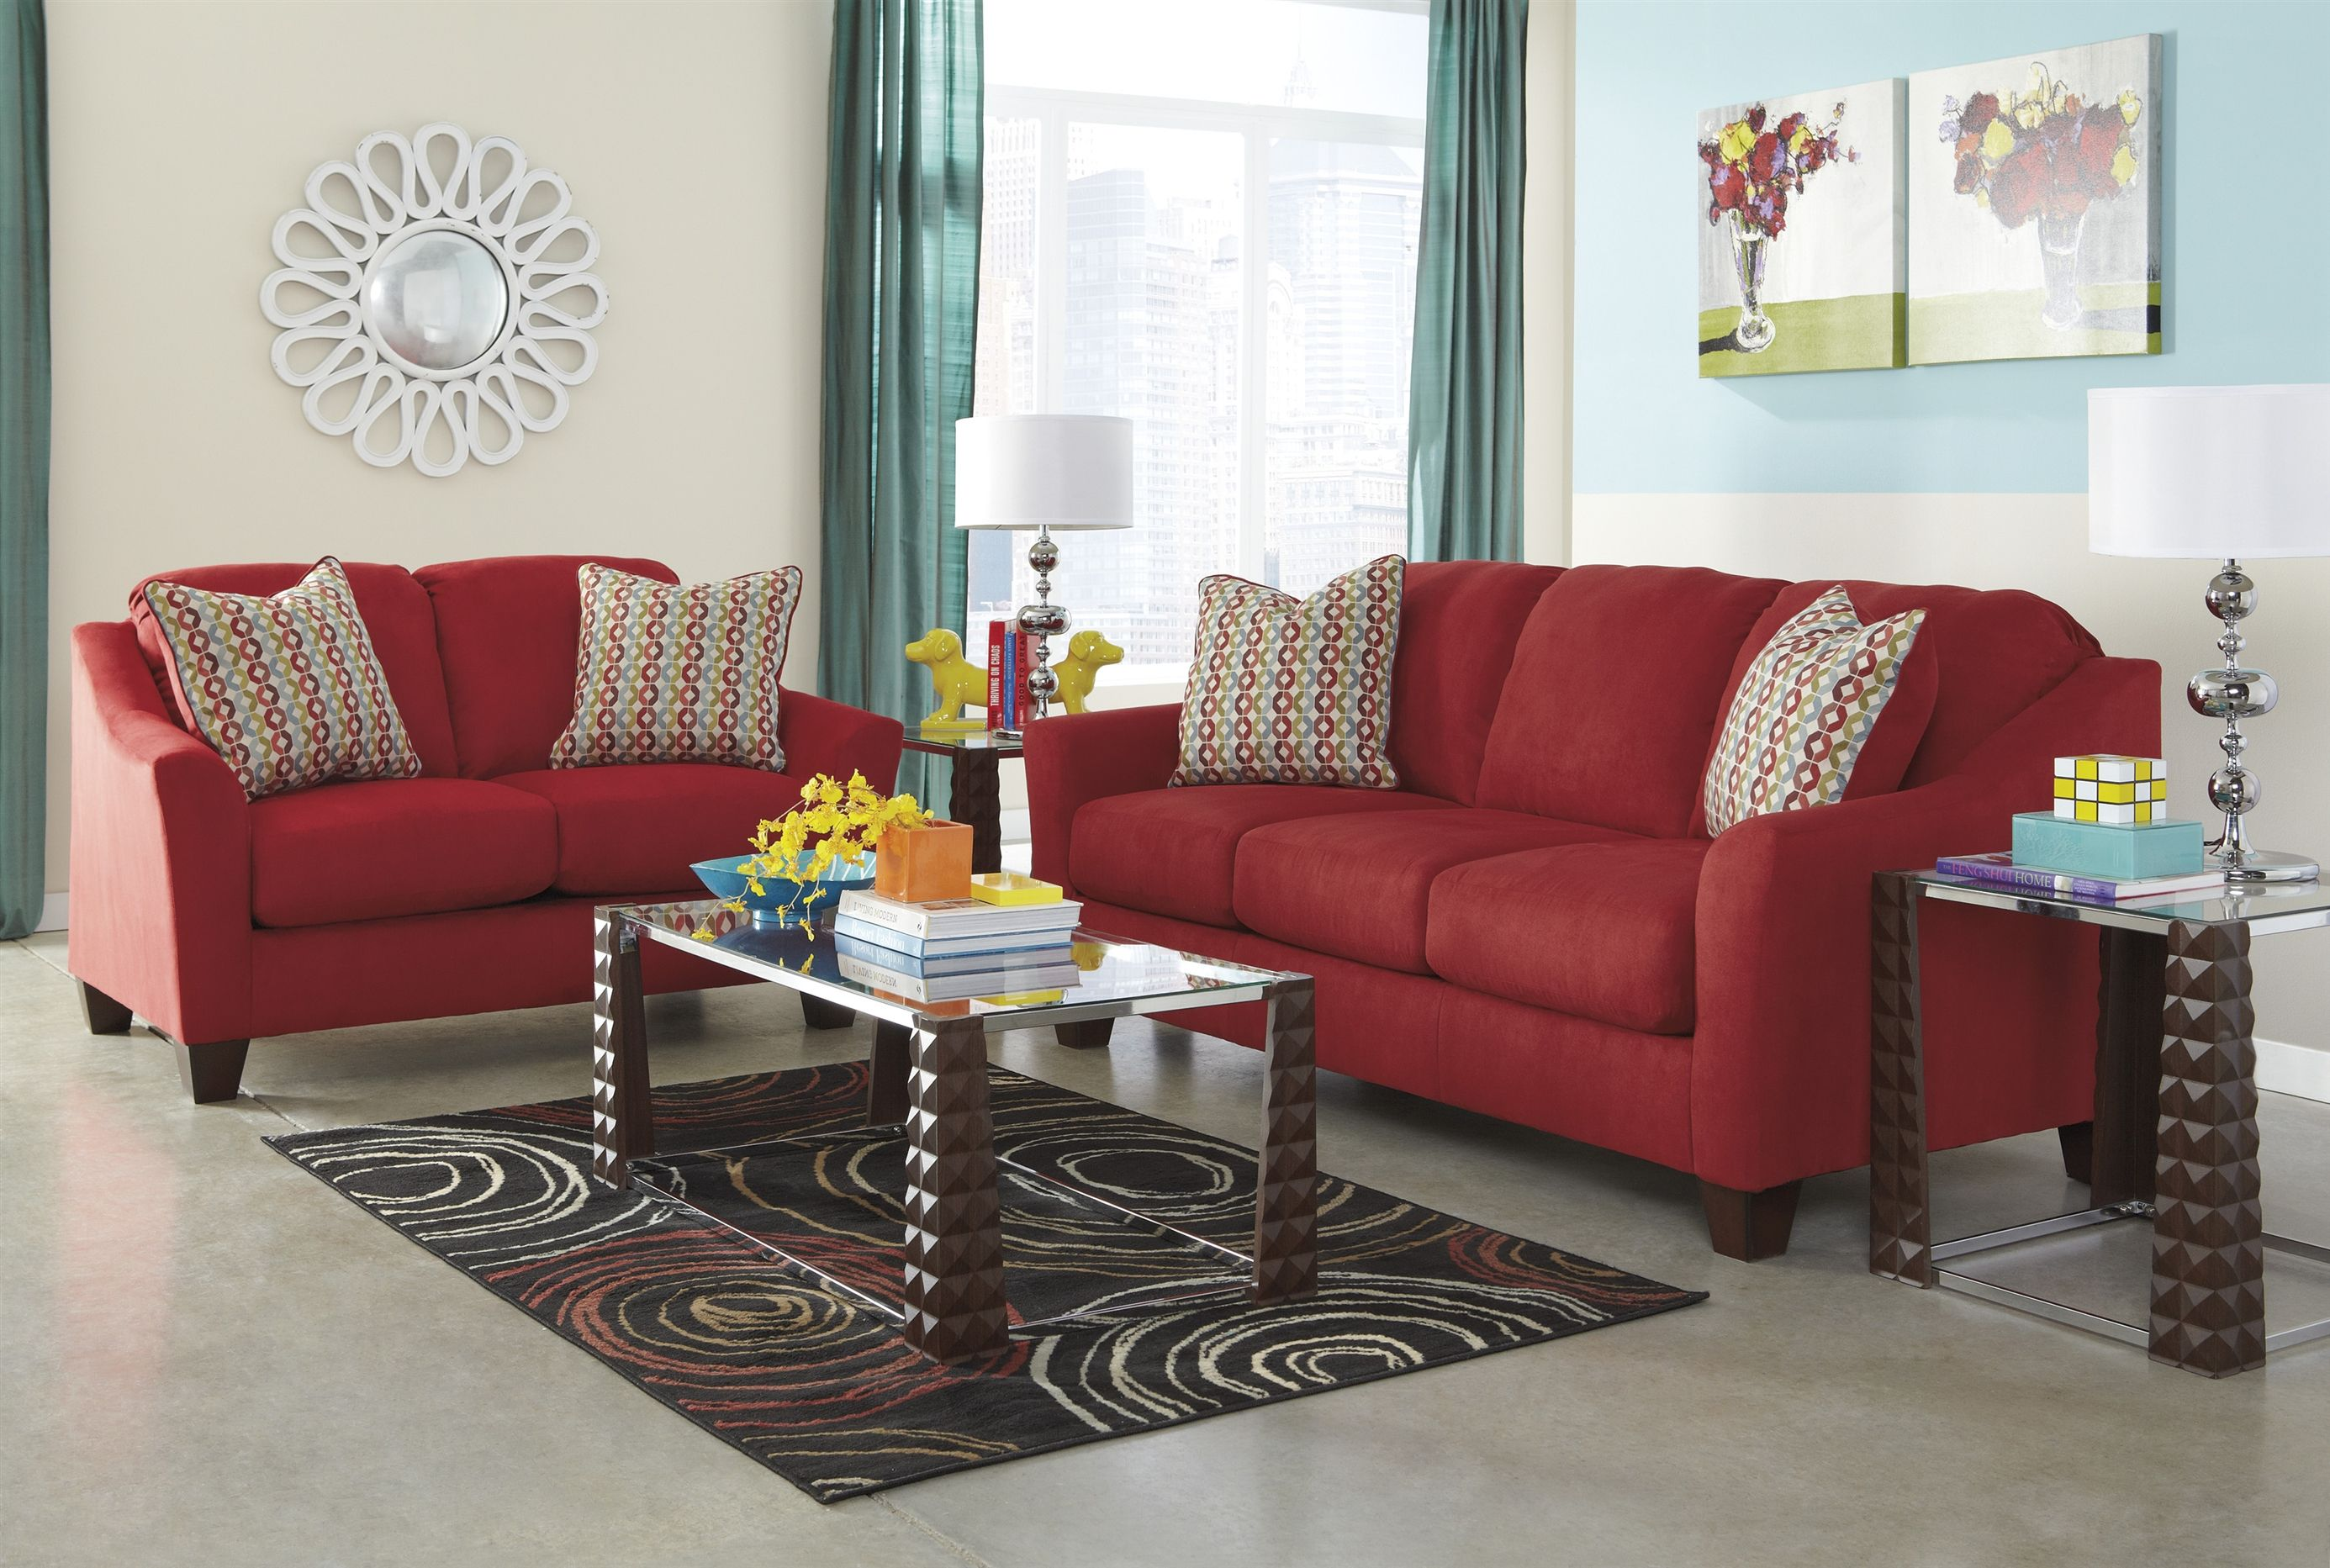 Hannin By Ashley Furniture In Store Now Furniture Living Room Sets Affordable Furniture Stores